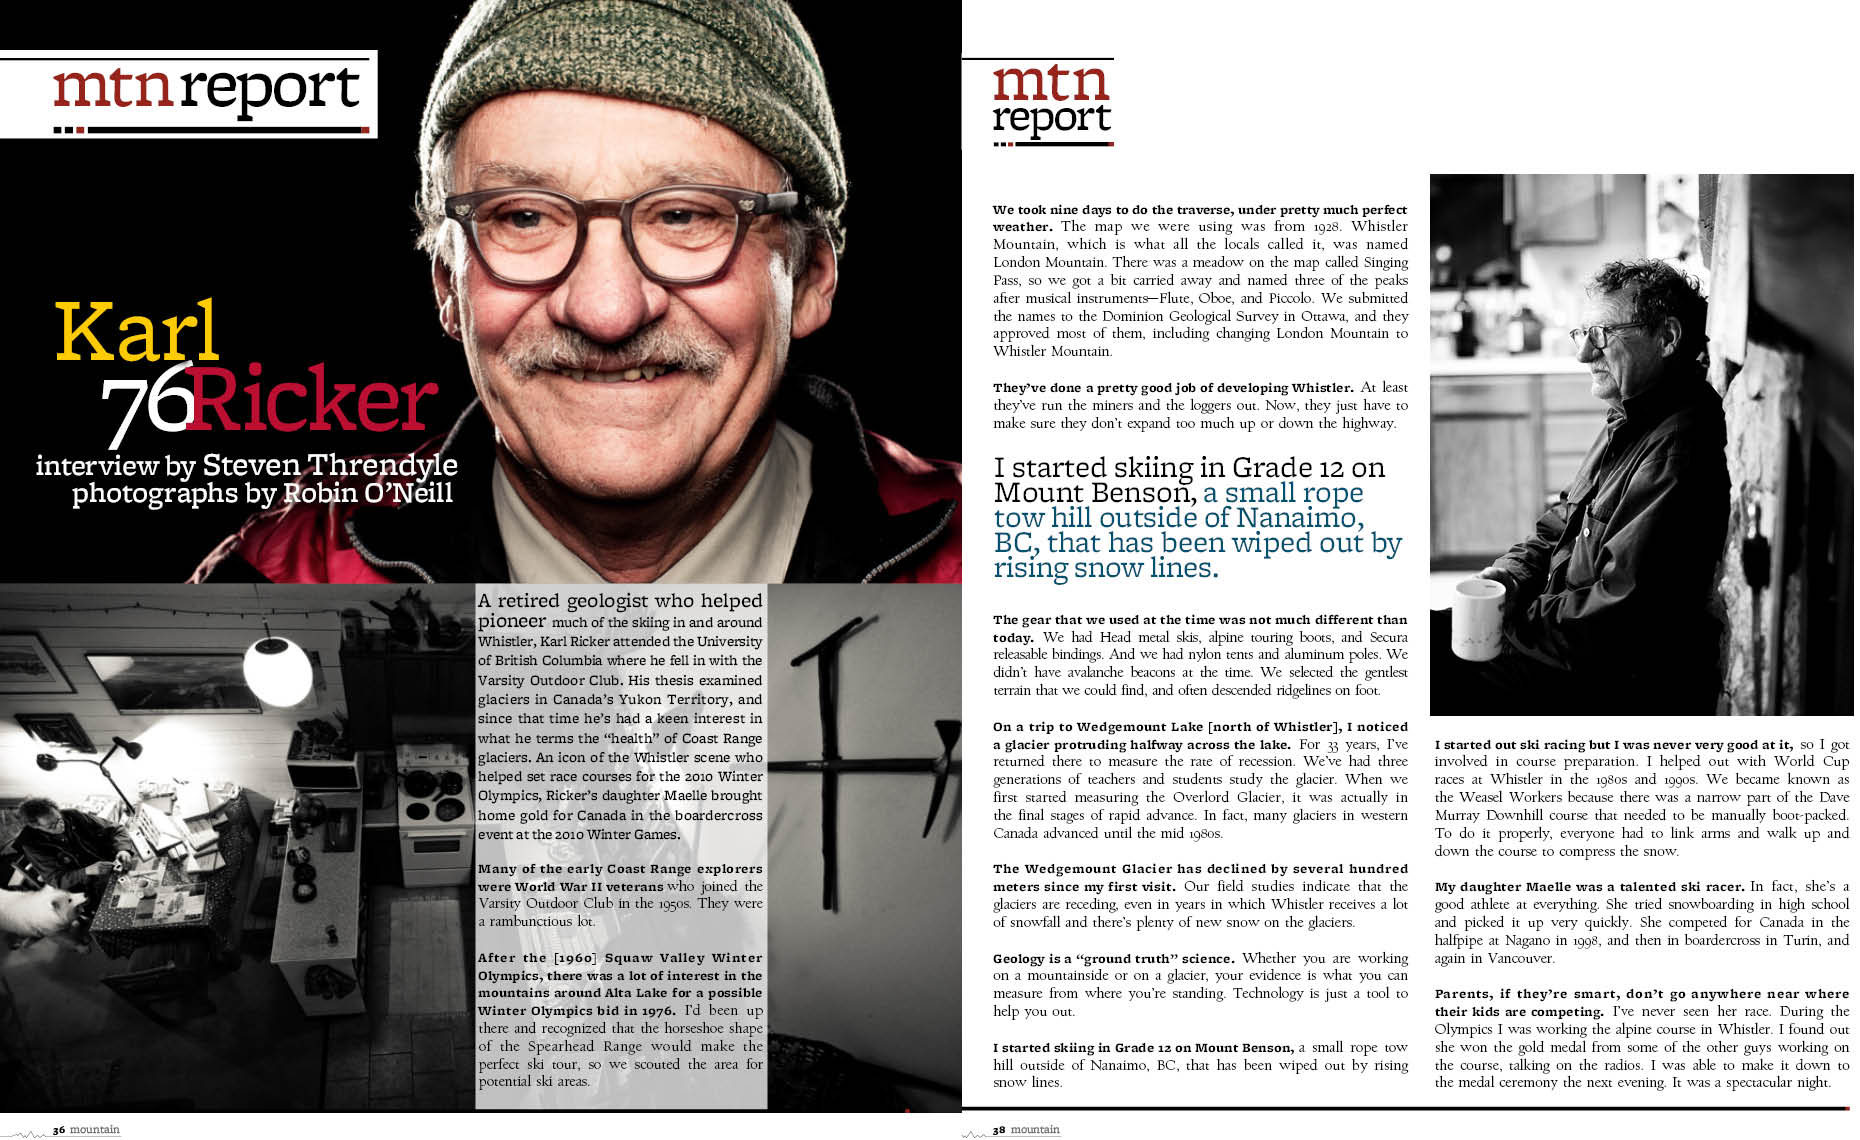 Karl Ricker feature article in magazine